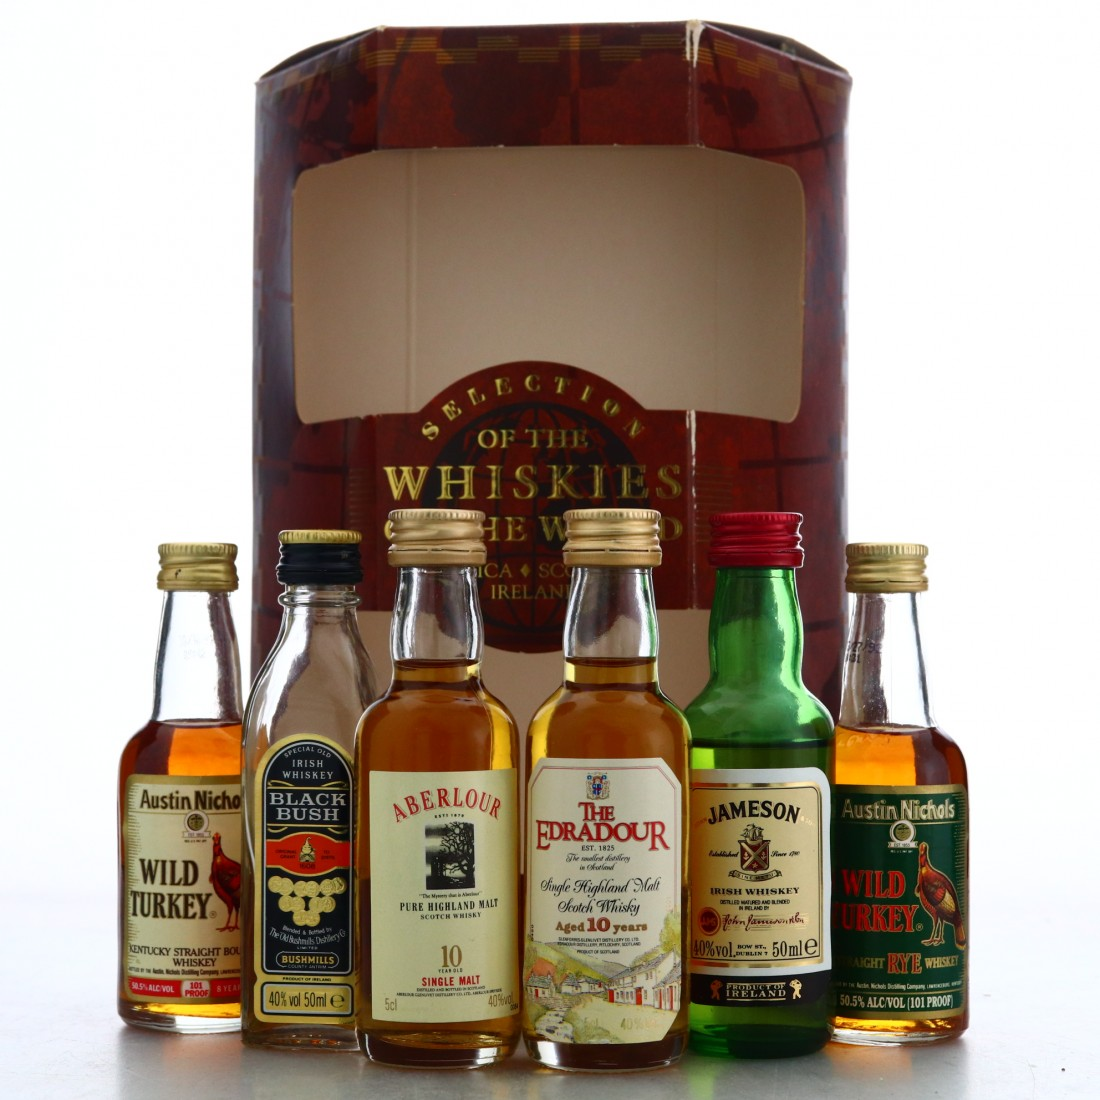 Whiskies of the World Miniatures x 6